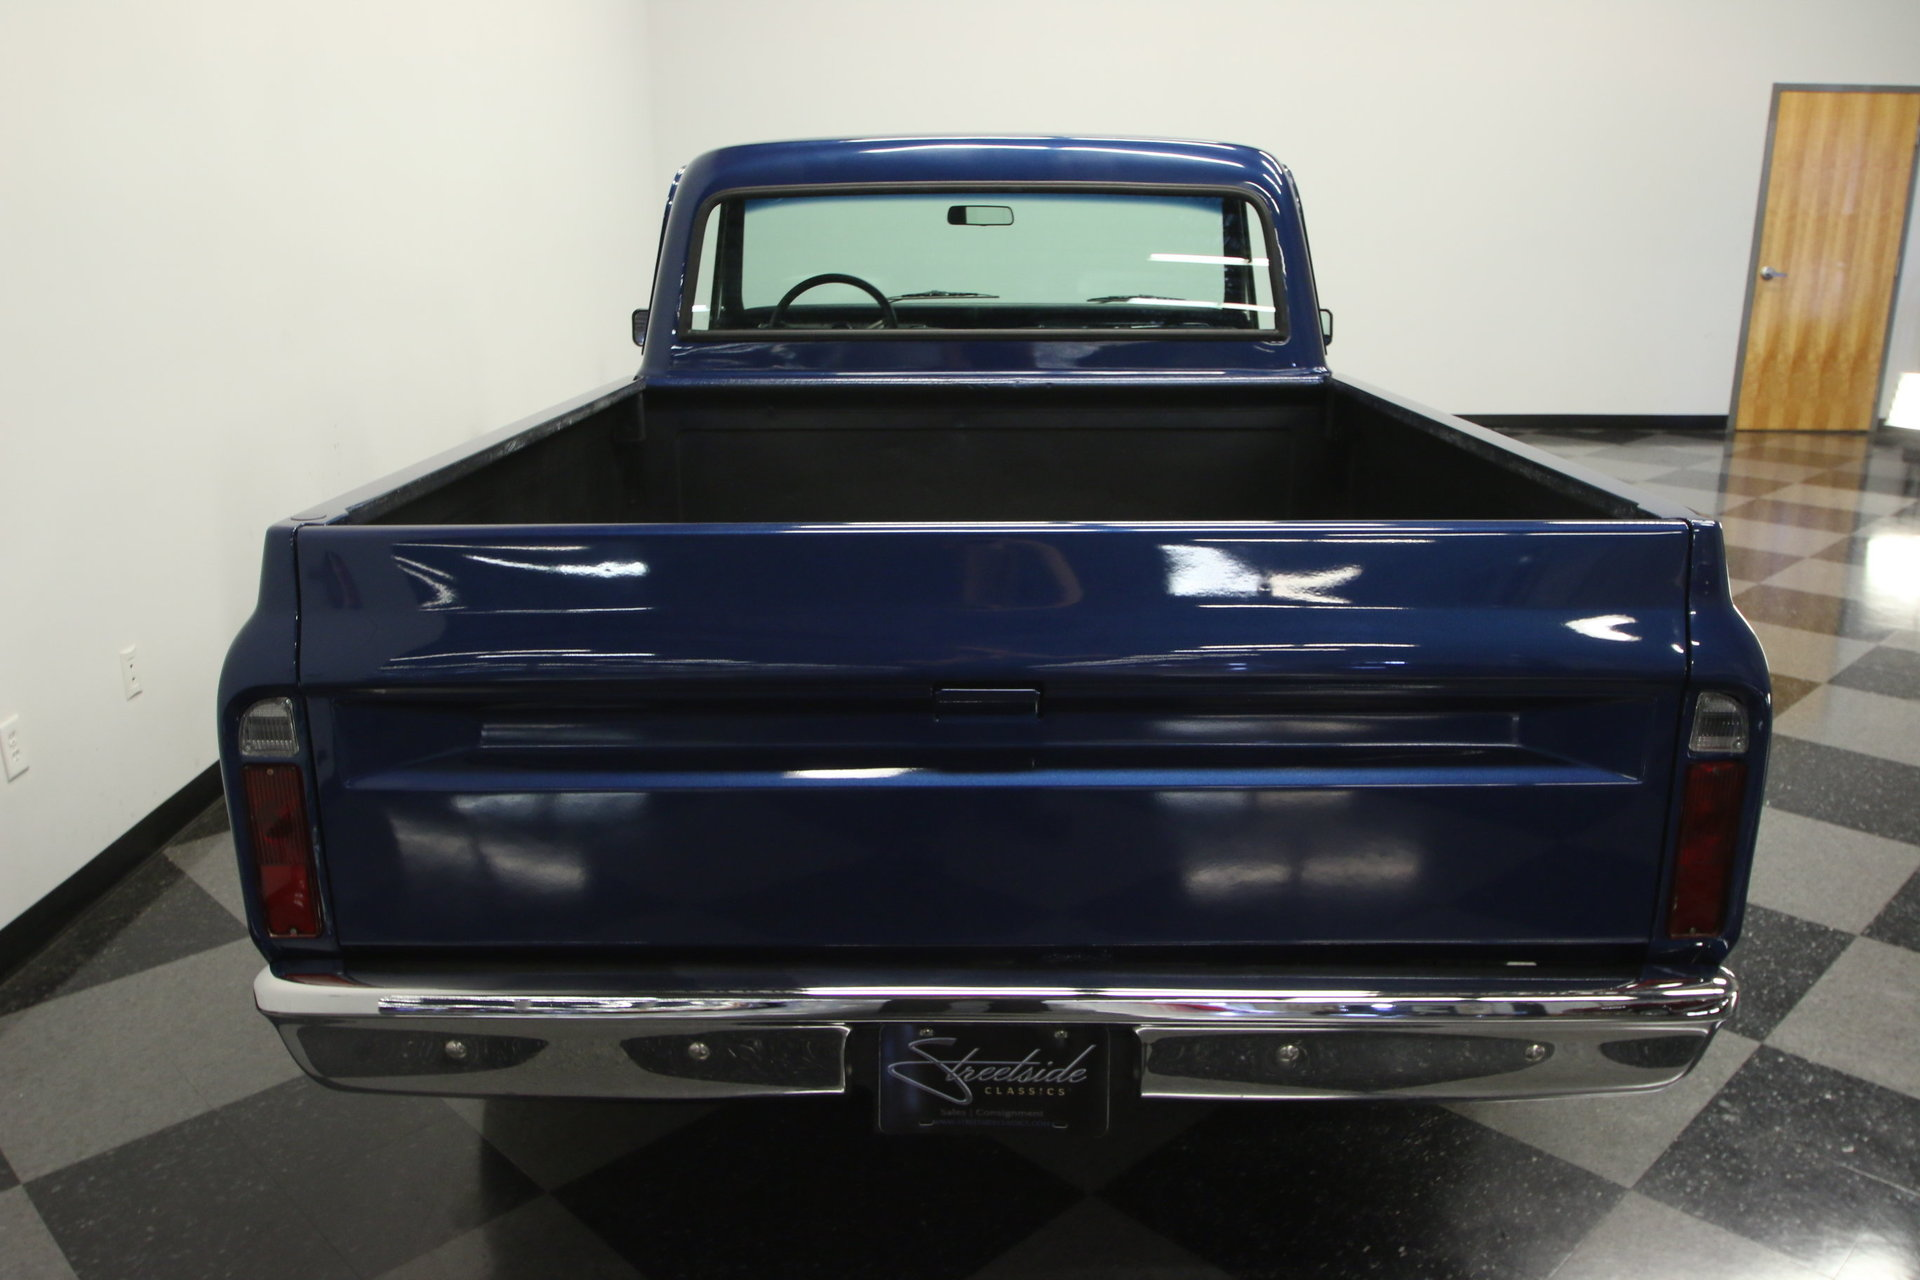 1968 Chevrolet C10 Streetside Classics The Nations Trusted Chevy Pickup Truck Show More Photos